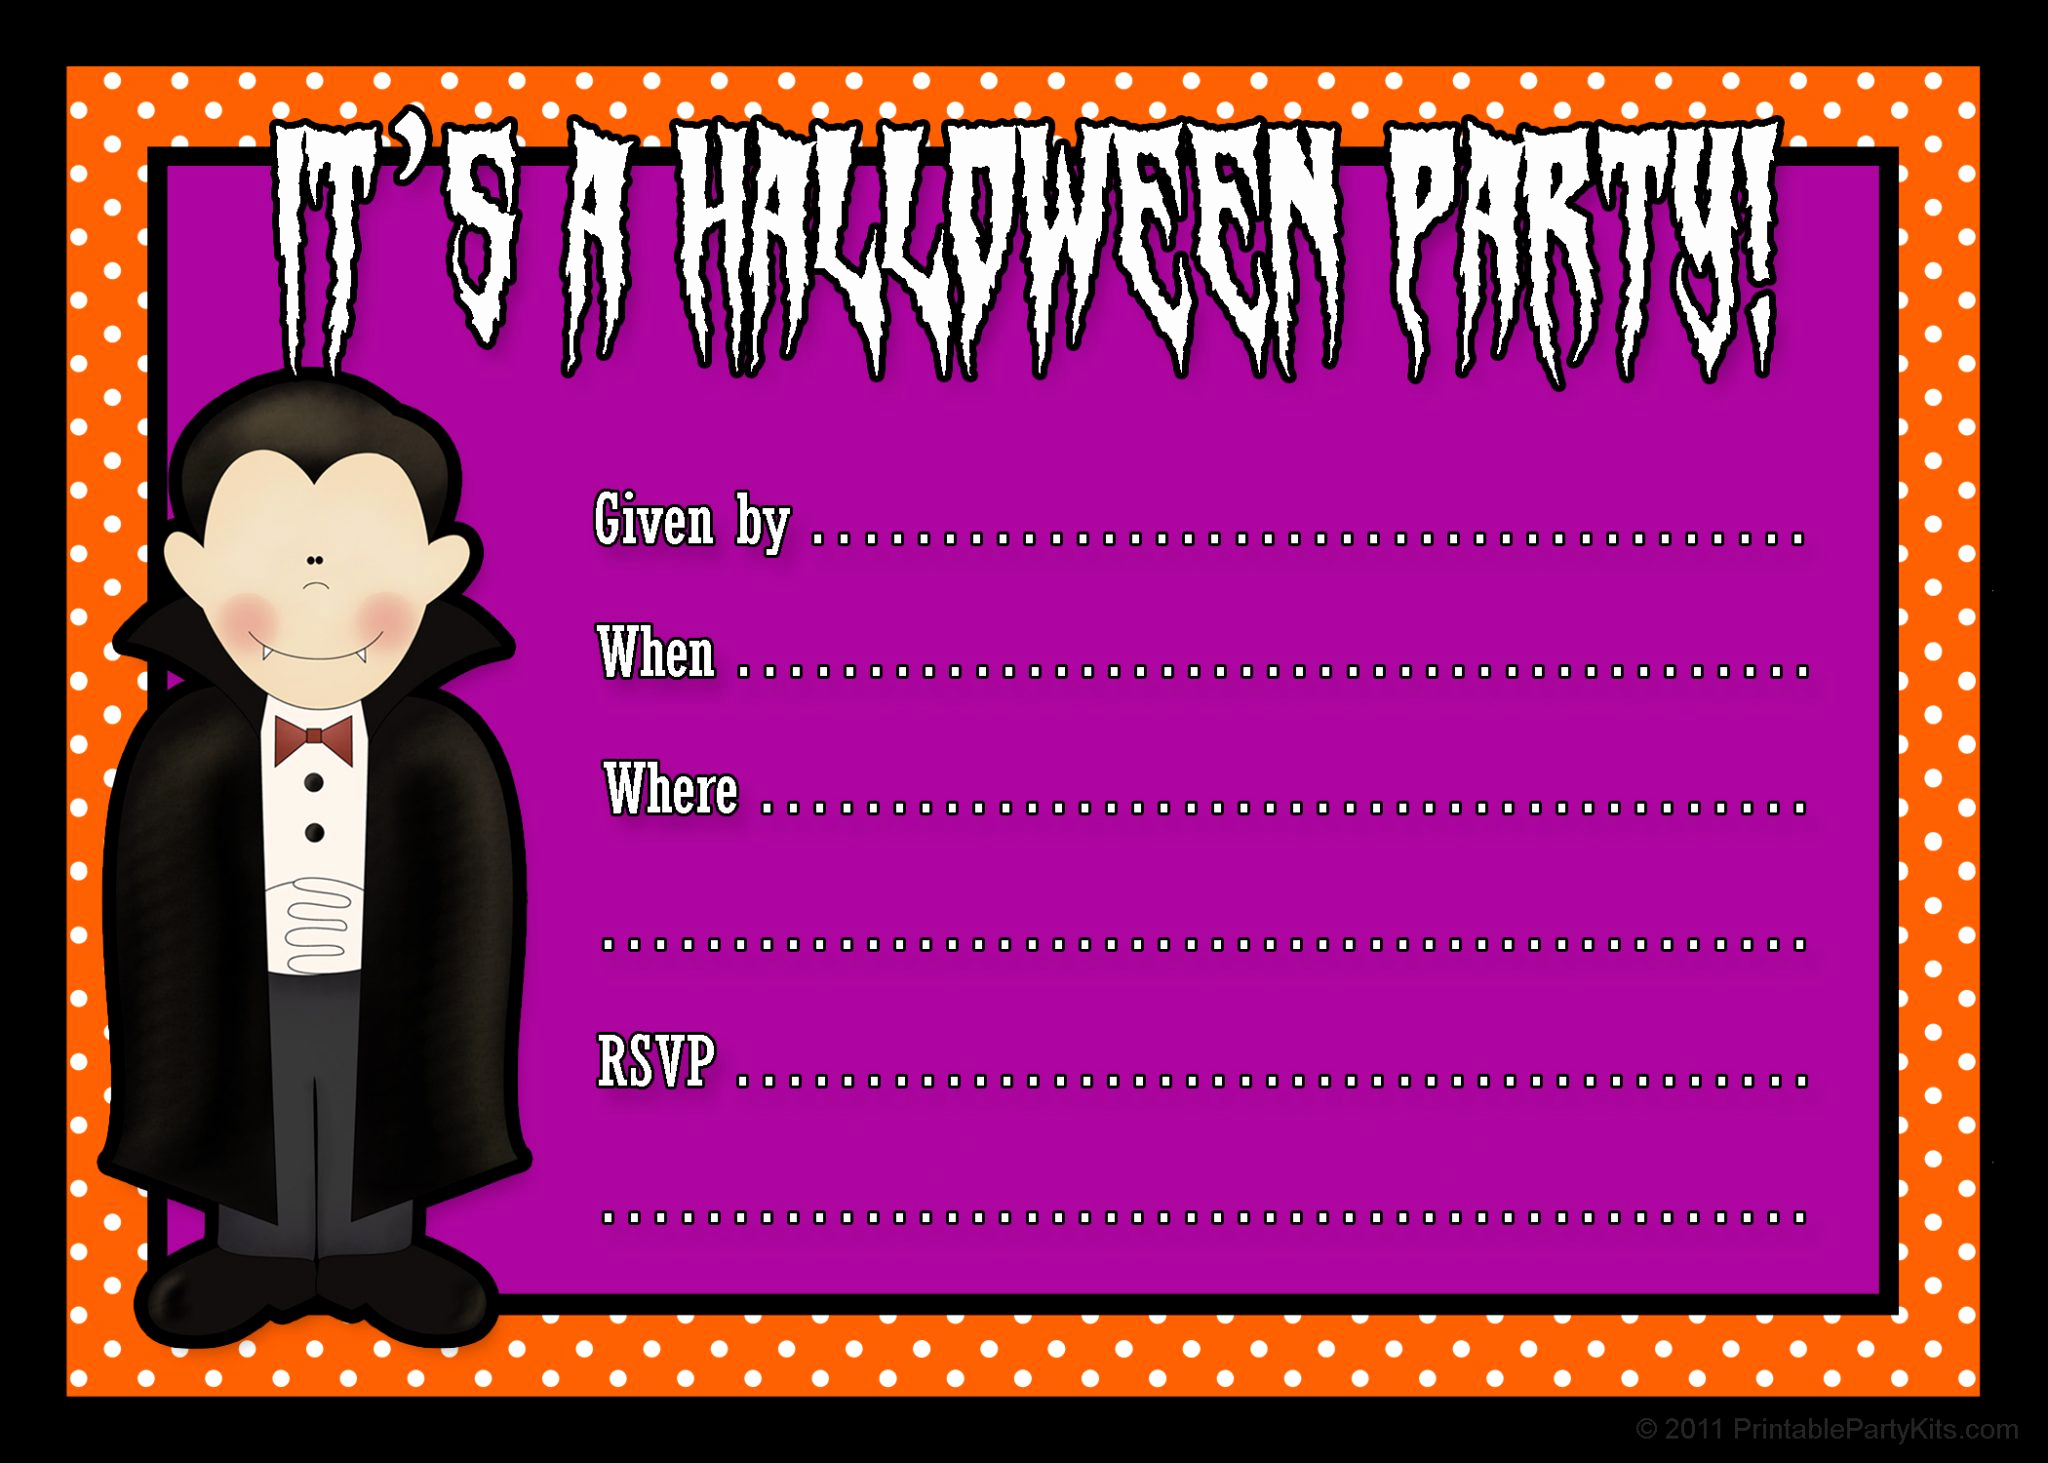 Halloween Party Invite Template New Invitations